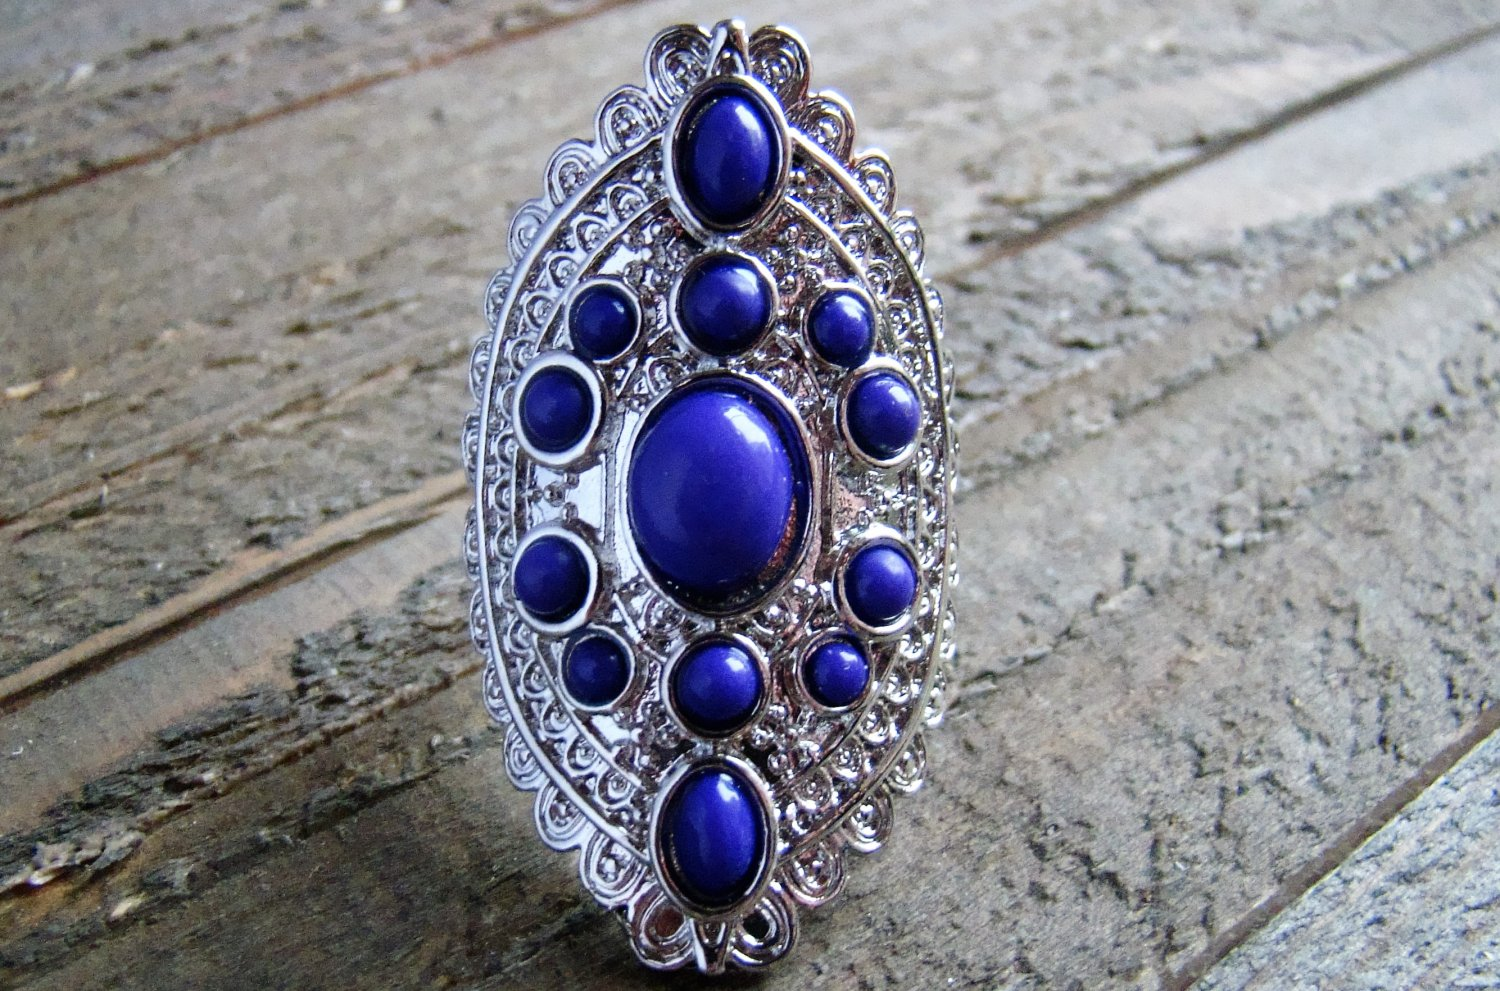 Purple Gypsy Boho Style Statement Ring Silver Tone Oval Adjustable Fashion Jewelry